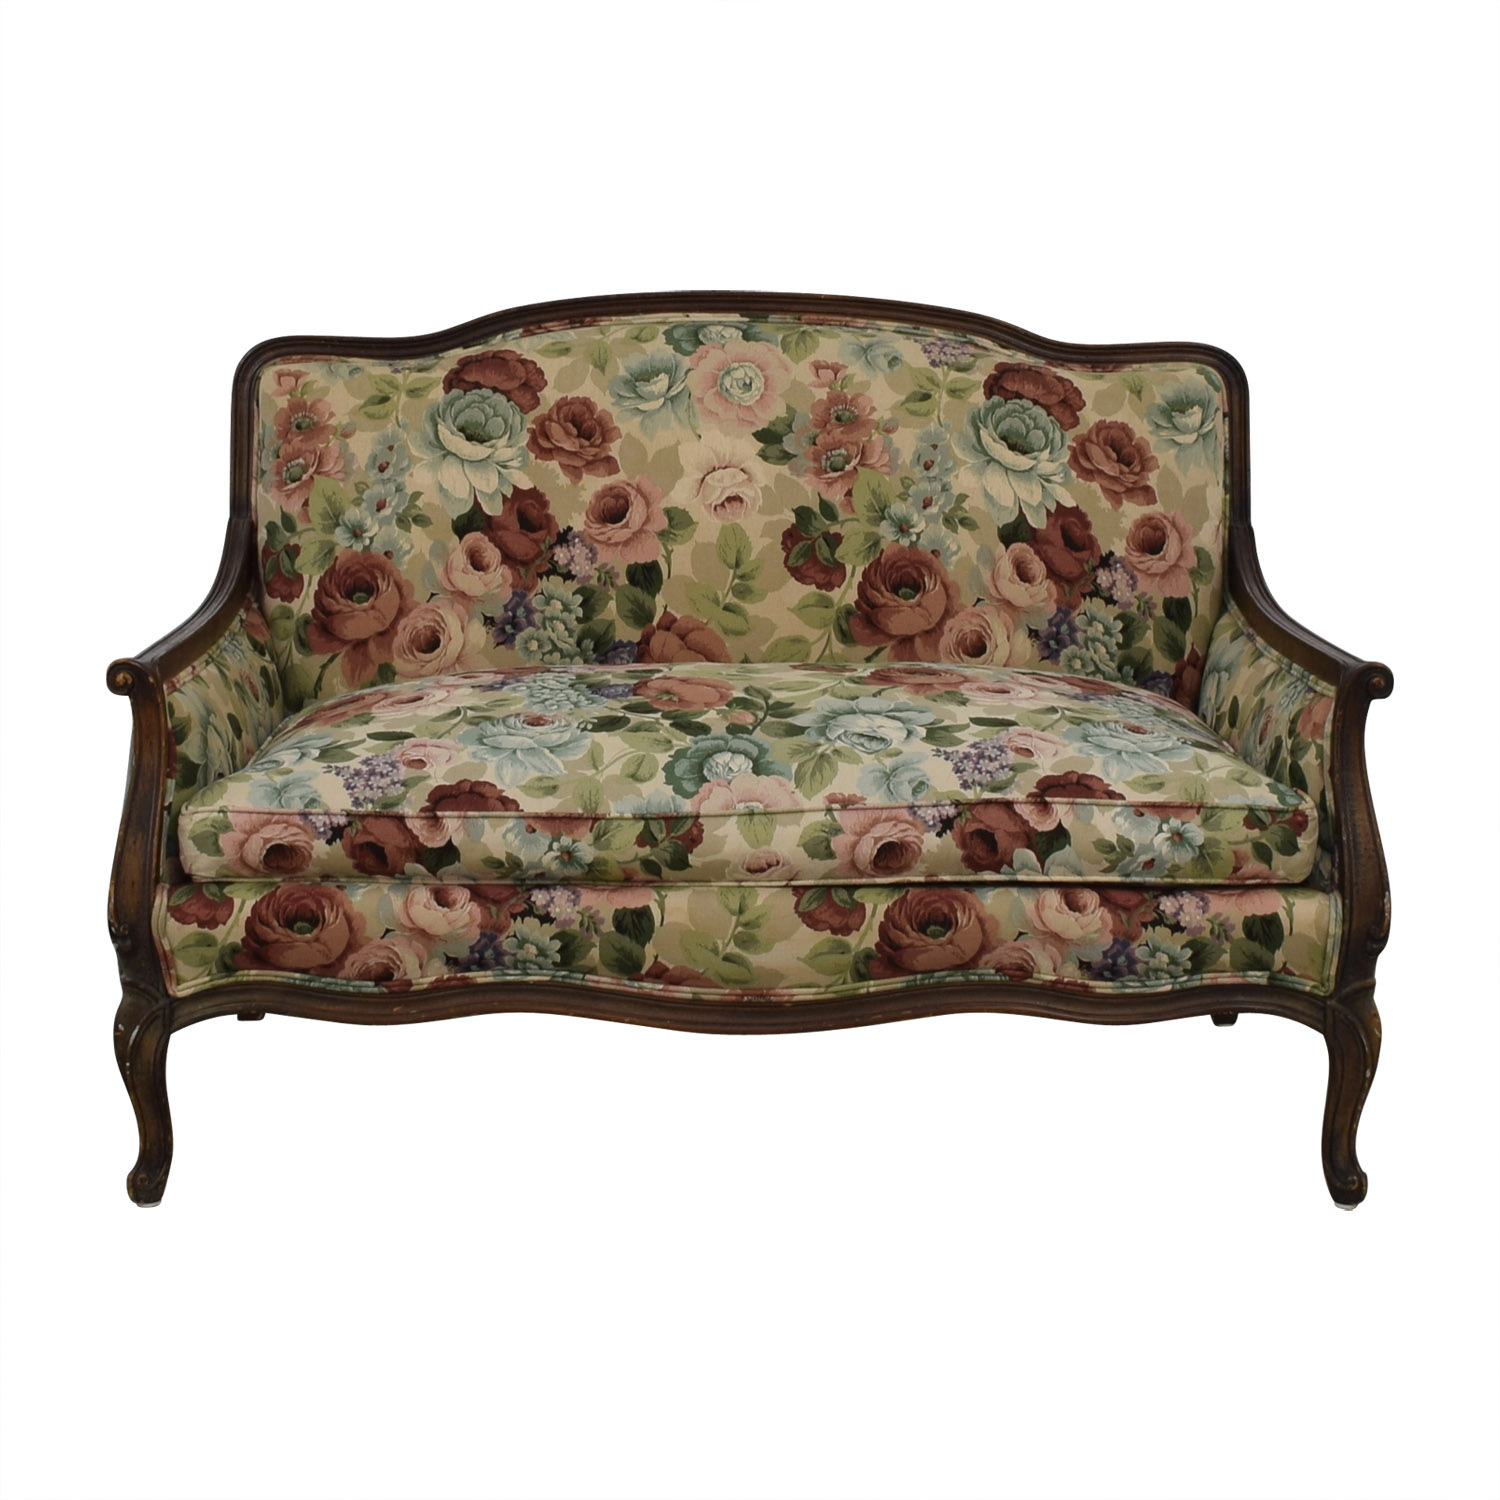 70 Off Antique Floral Upholstered Single Cushion Loveseat Sofas